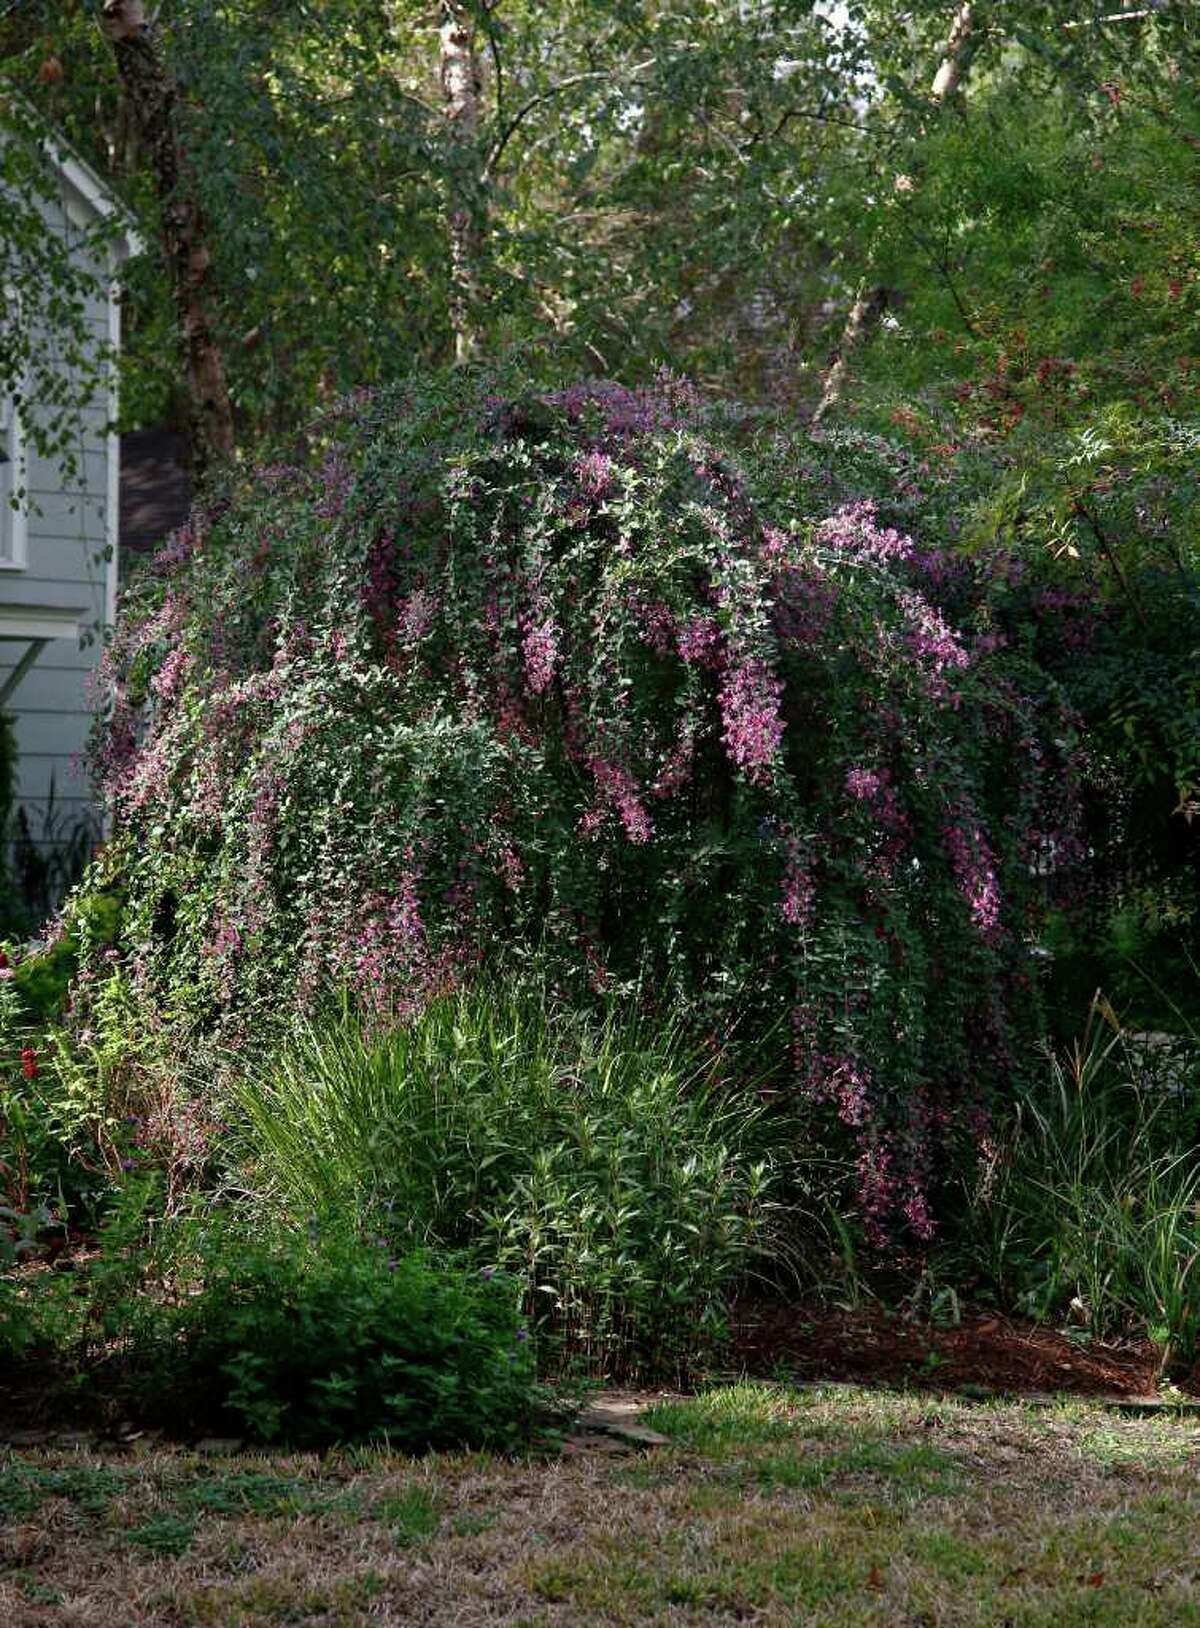 FALL'S FINEST: 'Little Volcano' lespedeza shows off its rosy-purple blooms in October.